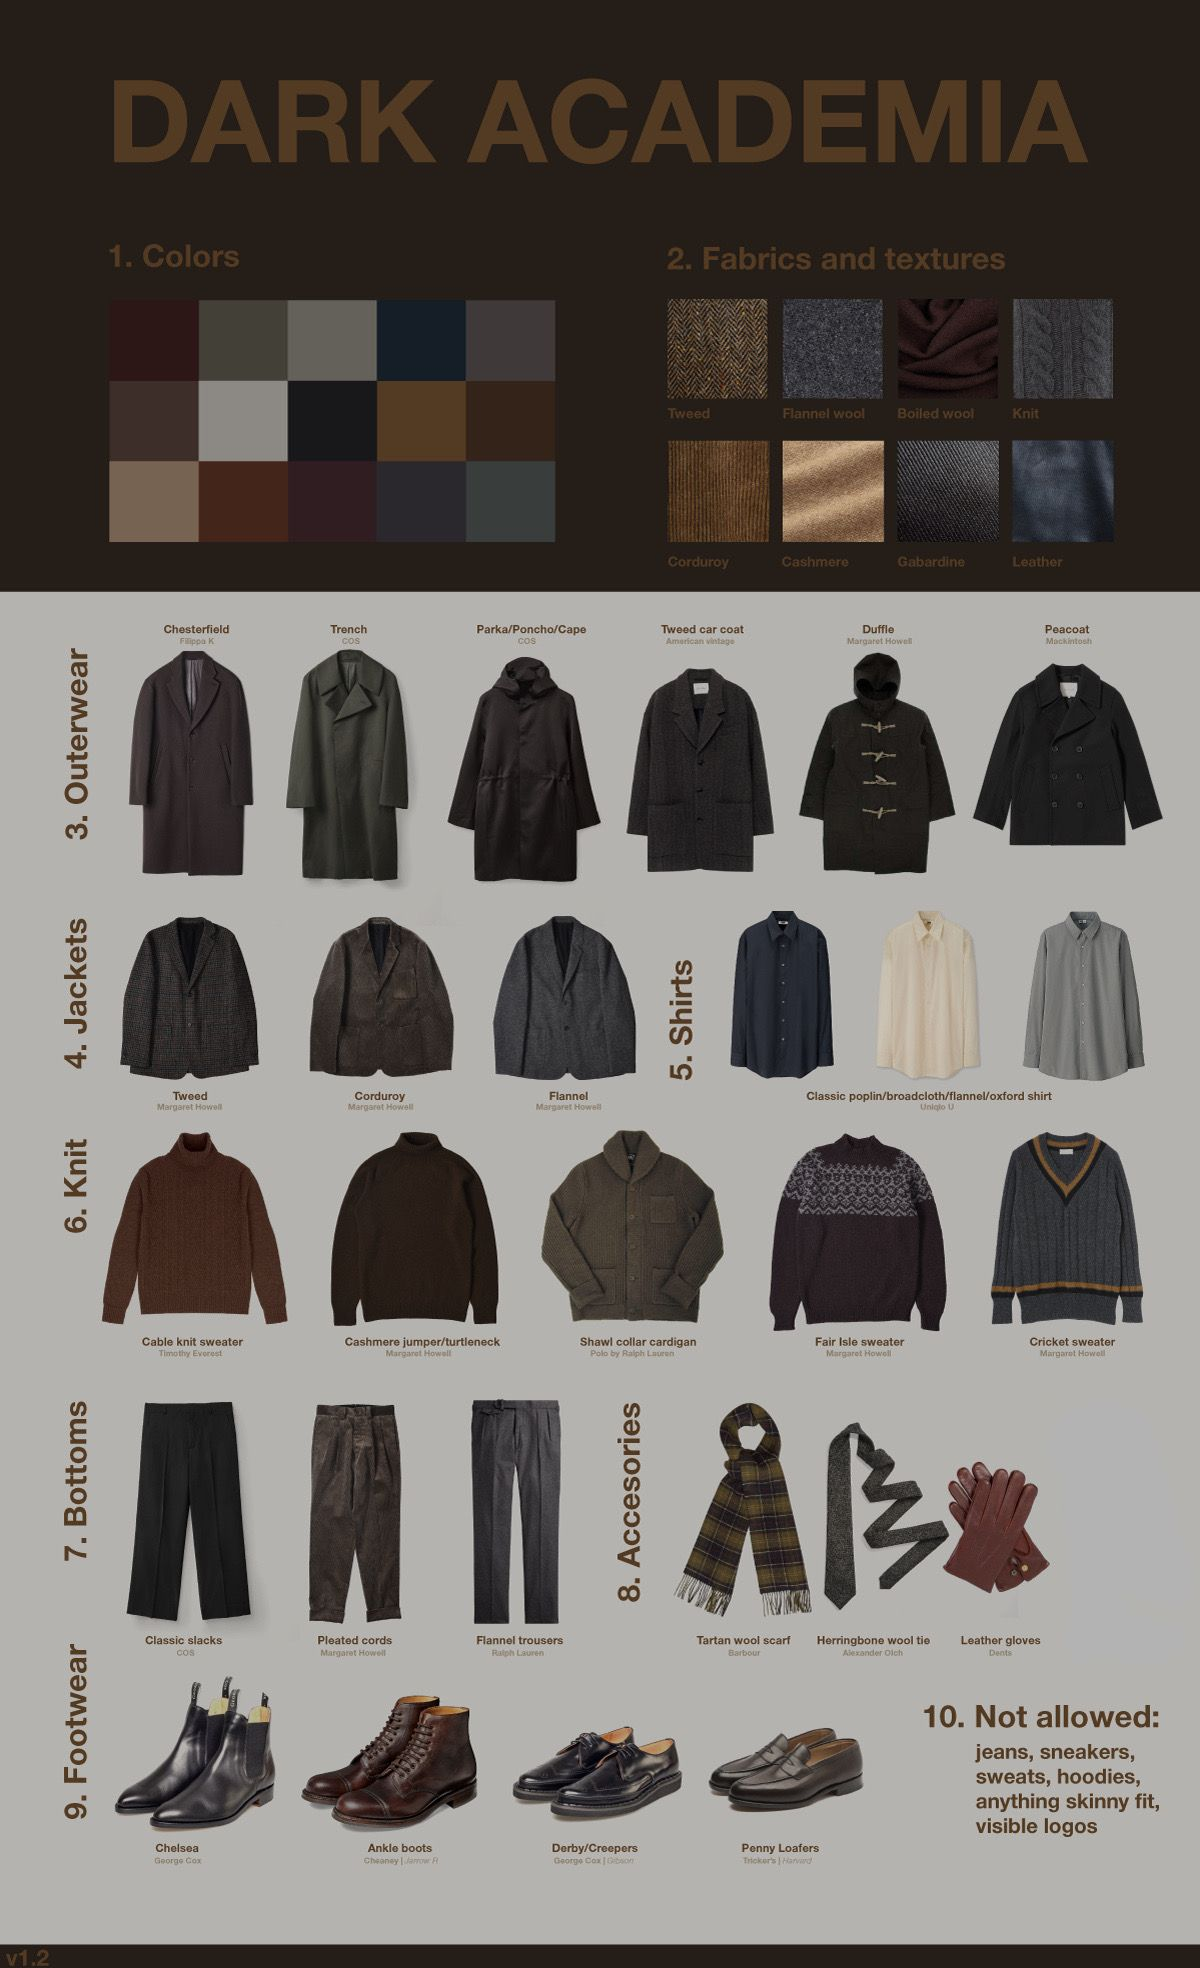 Higher Quality Version Of The Dark Academia Aesthetic Style Guide Infographic Brand Names In 2020 Aesthetic Clothes Vintage Outfits Fashion